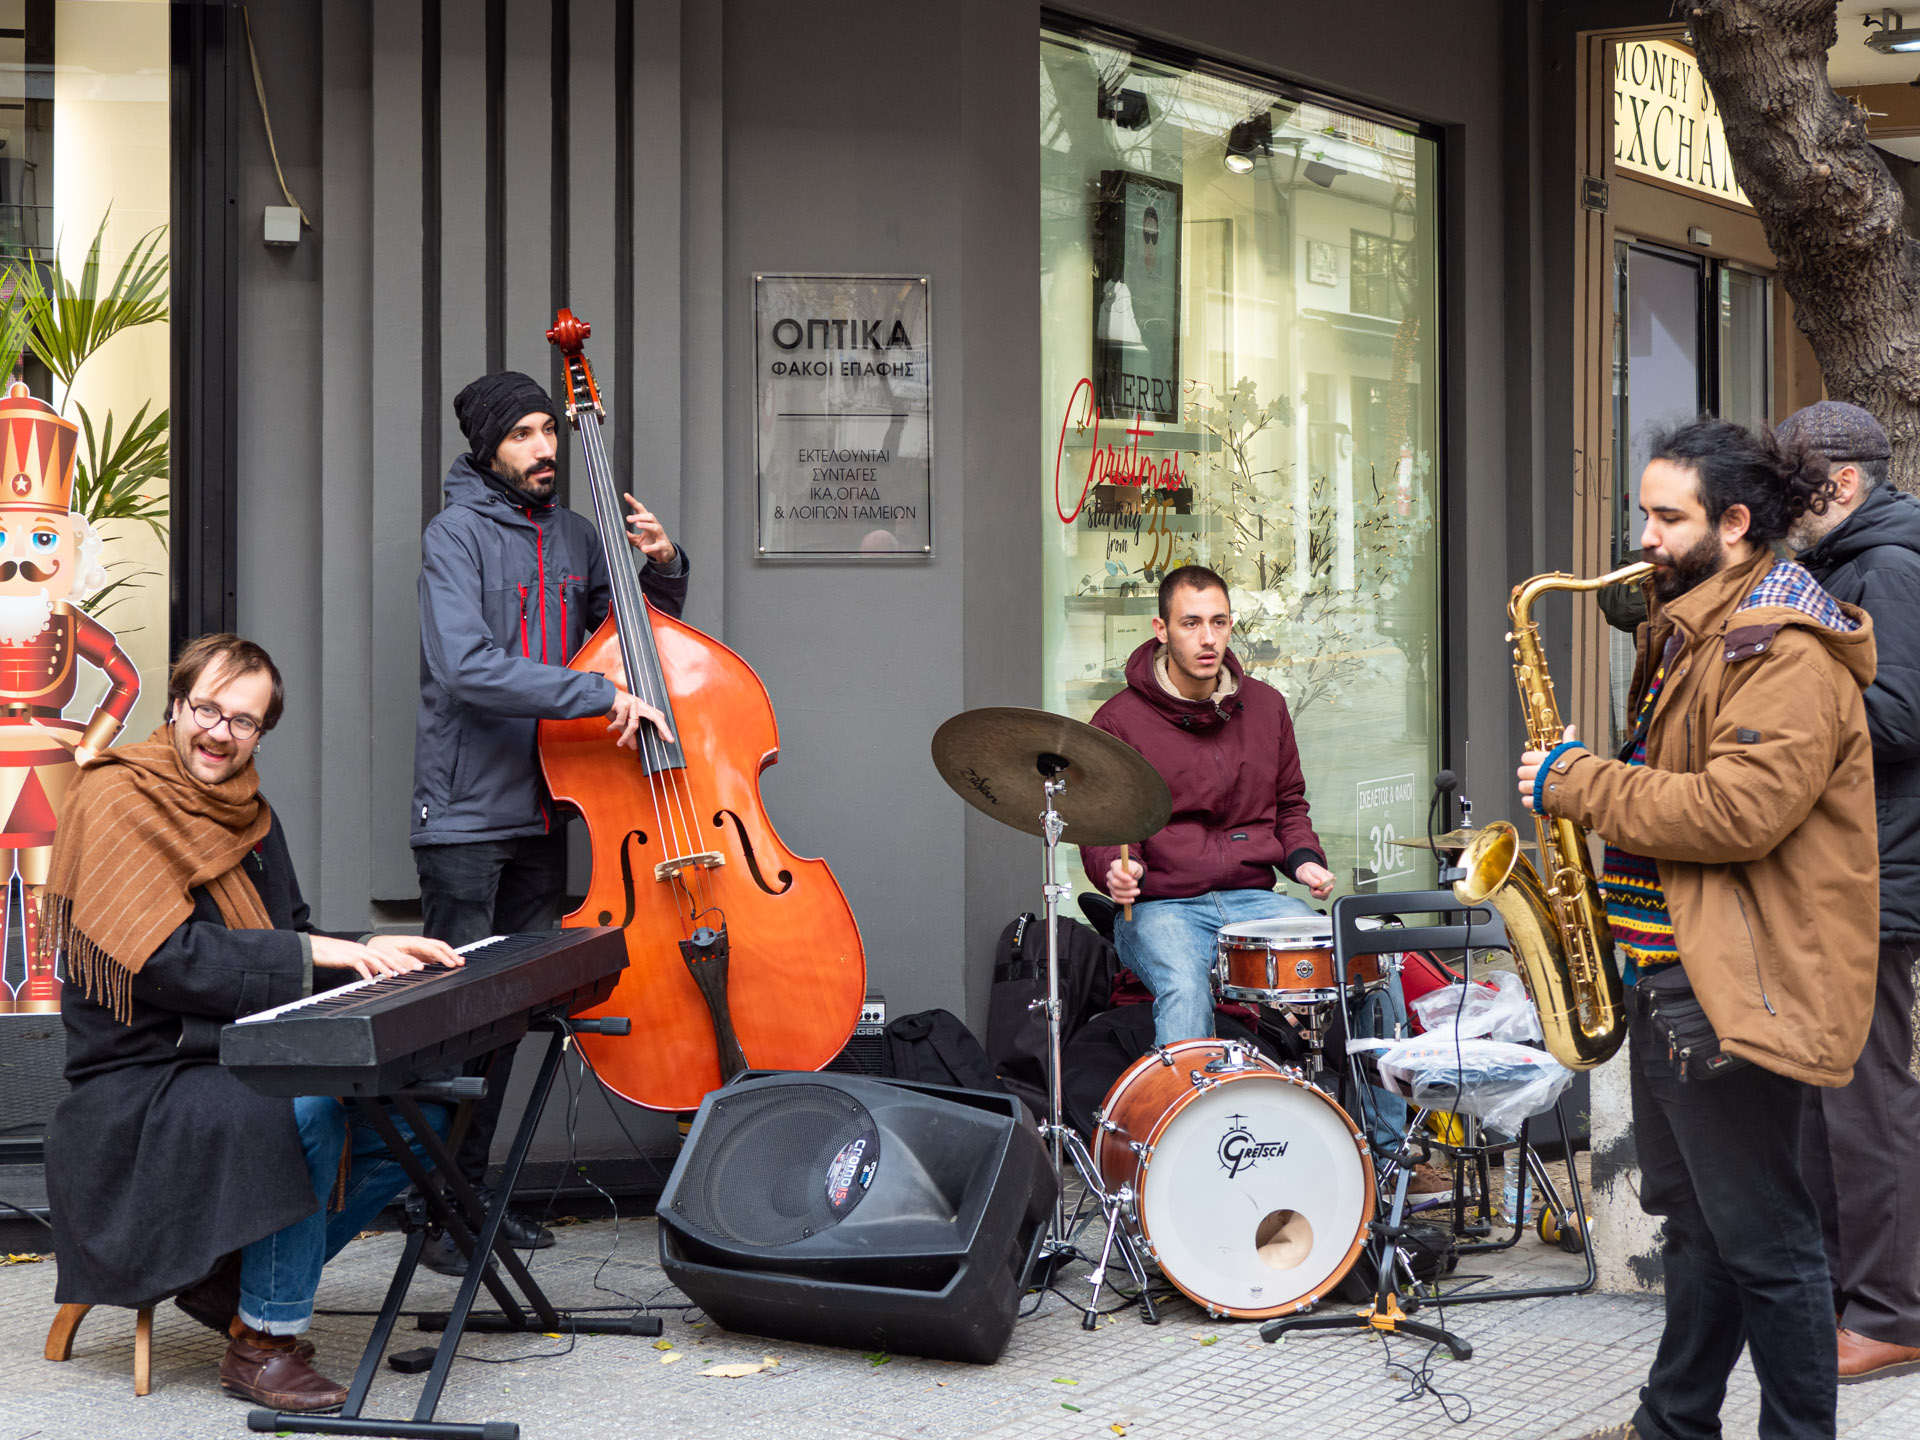 Nice jazzy tunes from those guys